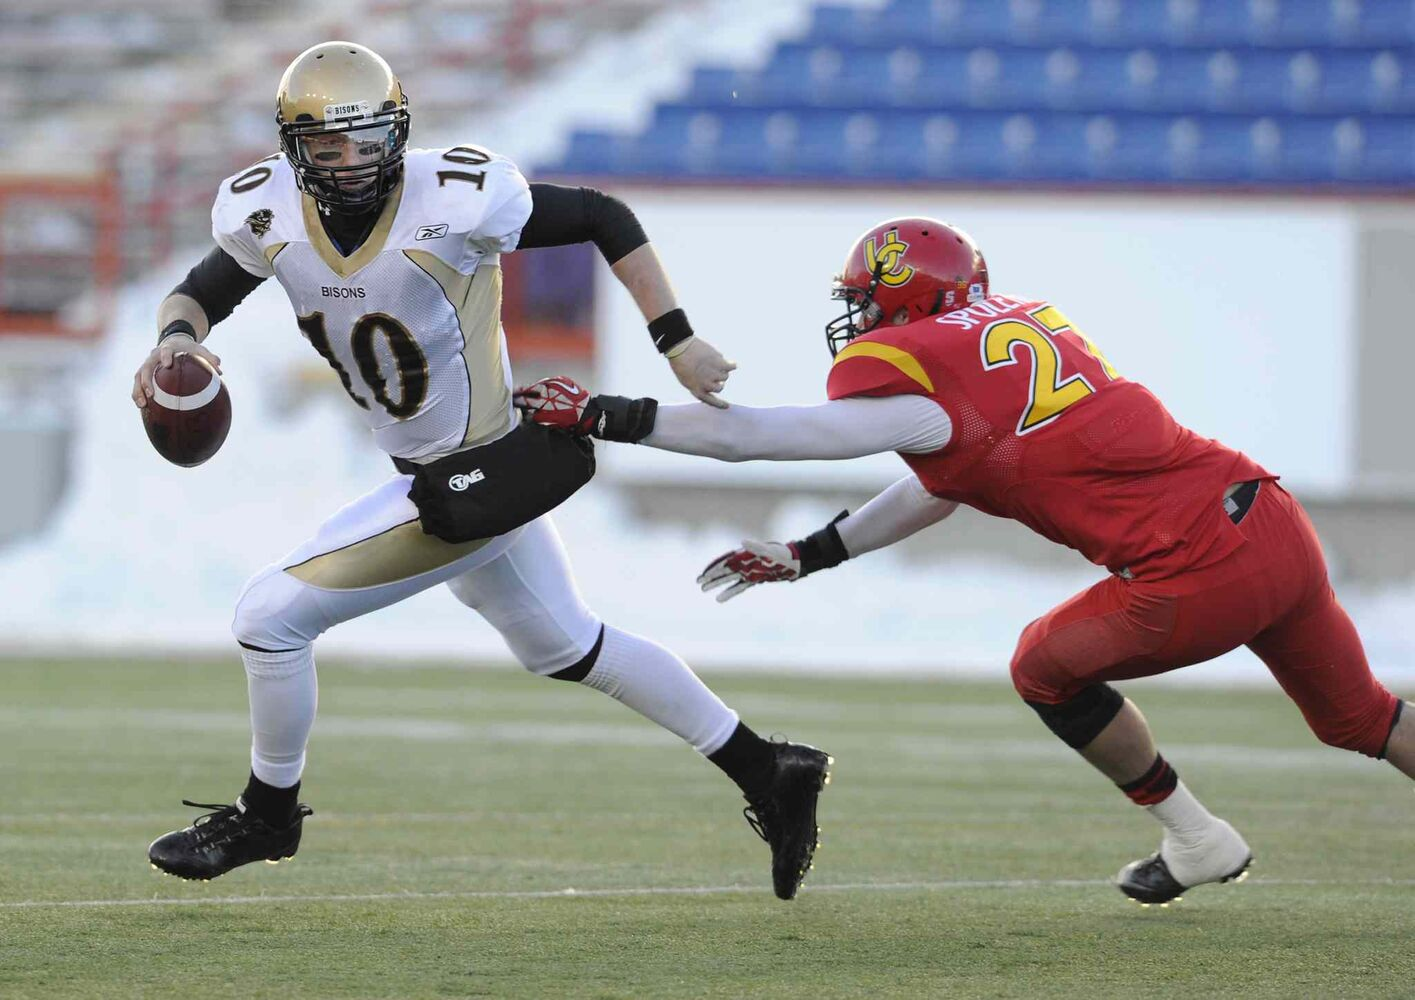 Manitoba Bisons quarterback Jordan Yantz (left) breaks away from Thomas Spoletini  of the Dinos during the first half.